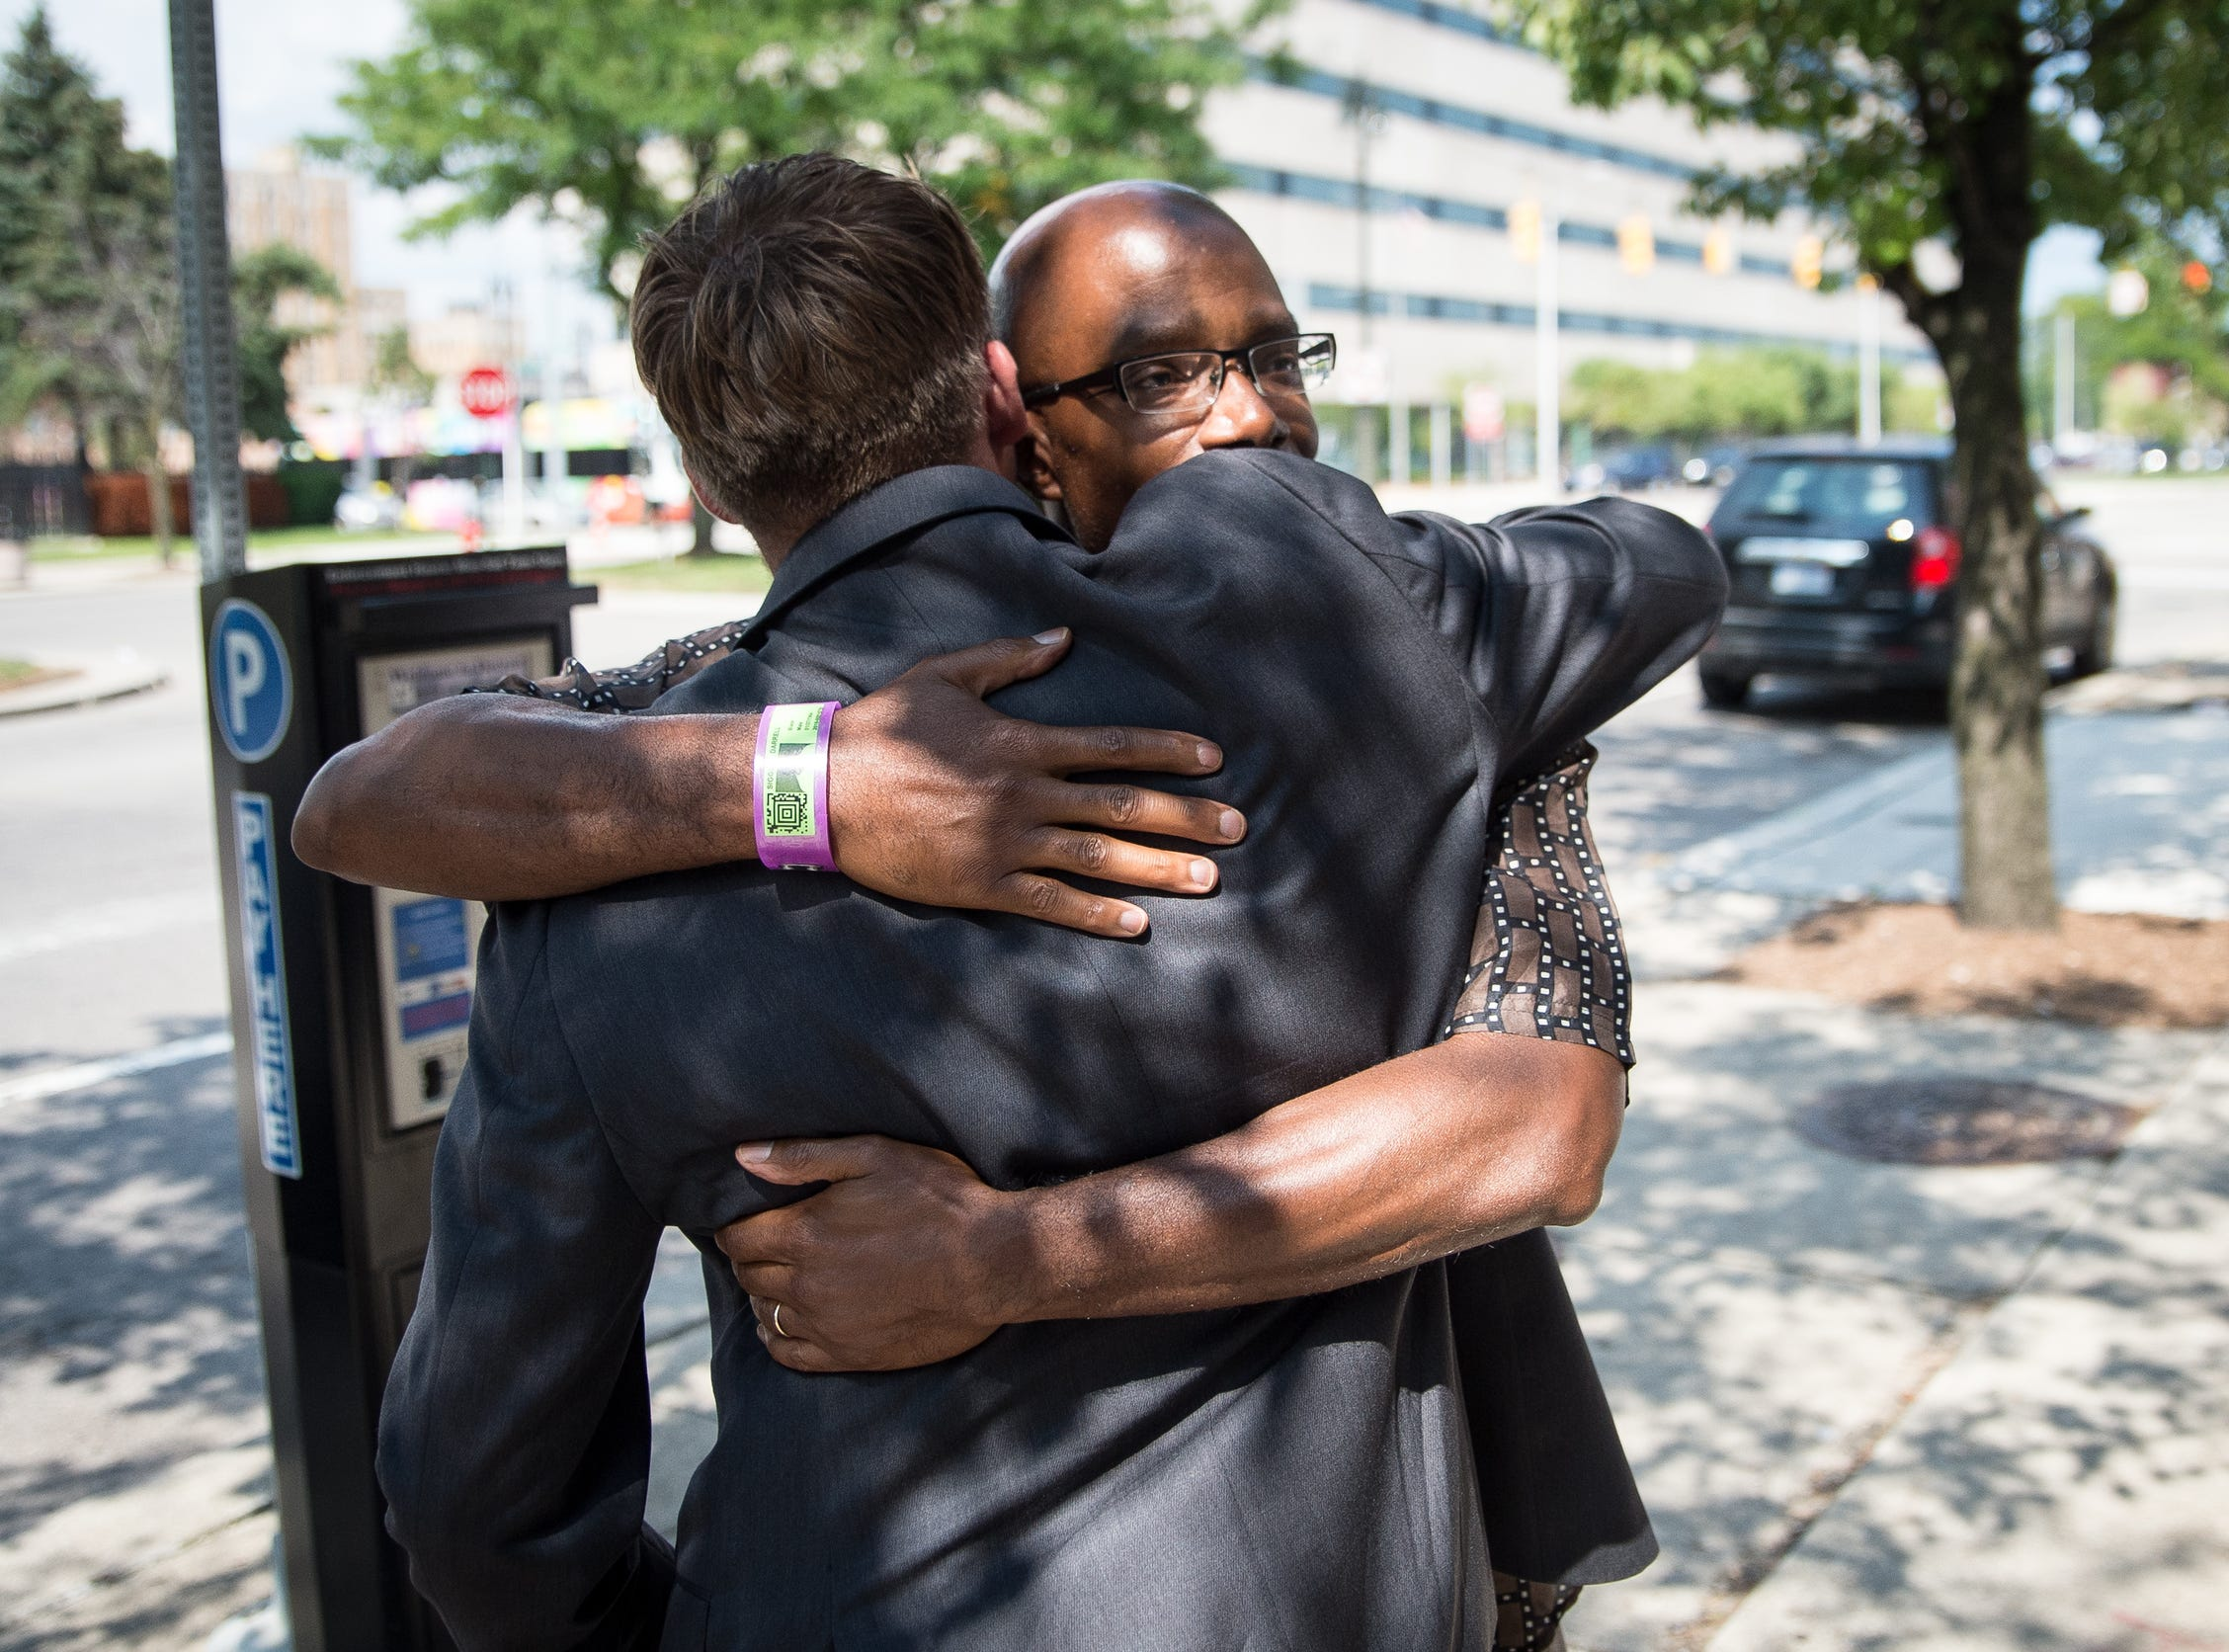 Darrell Siggers hugs his attorney Mike Waldo on Grand Boulevard in Detroit on Aug. 10, 2018. Siggers was released from The William Dickerson Detention Facility in Detroit that day, after serving 34 years in prison.